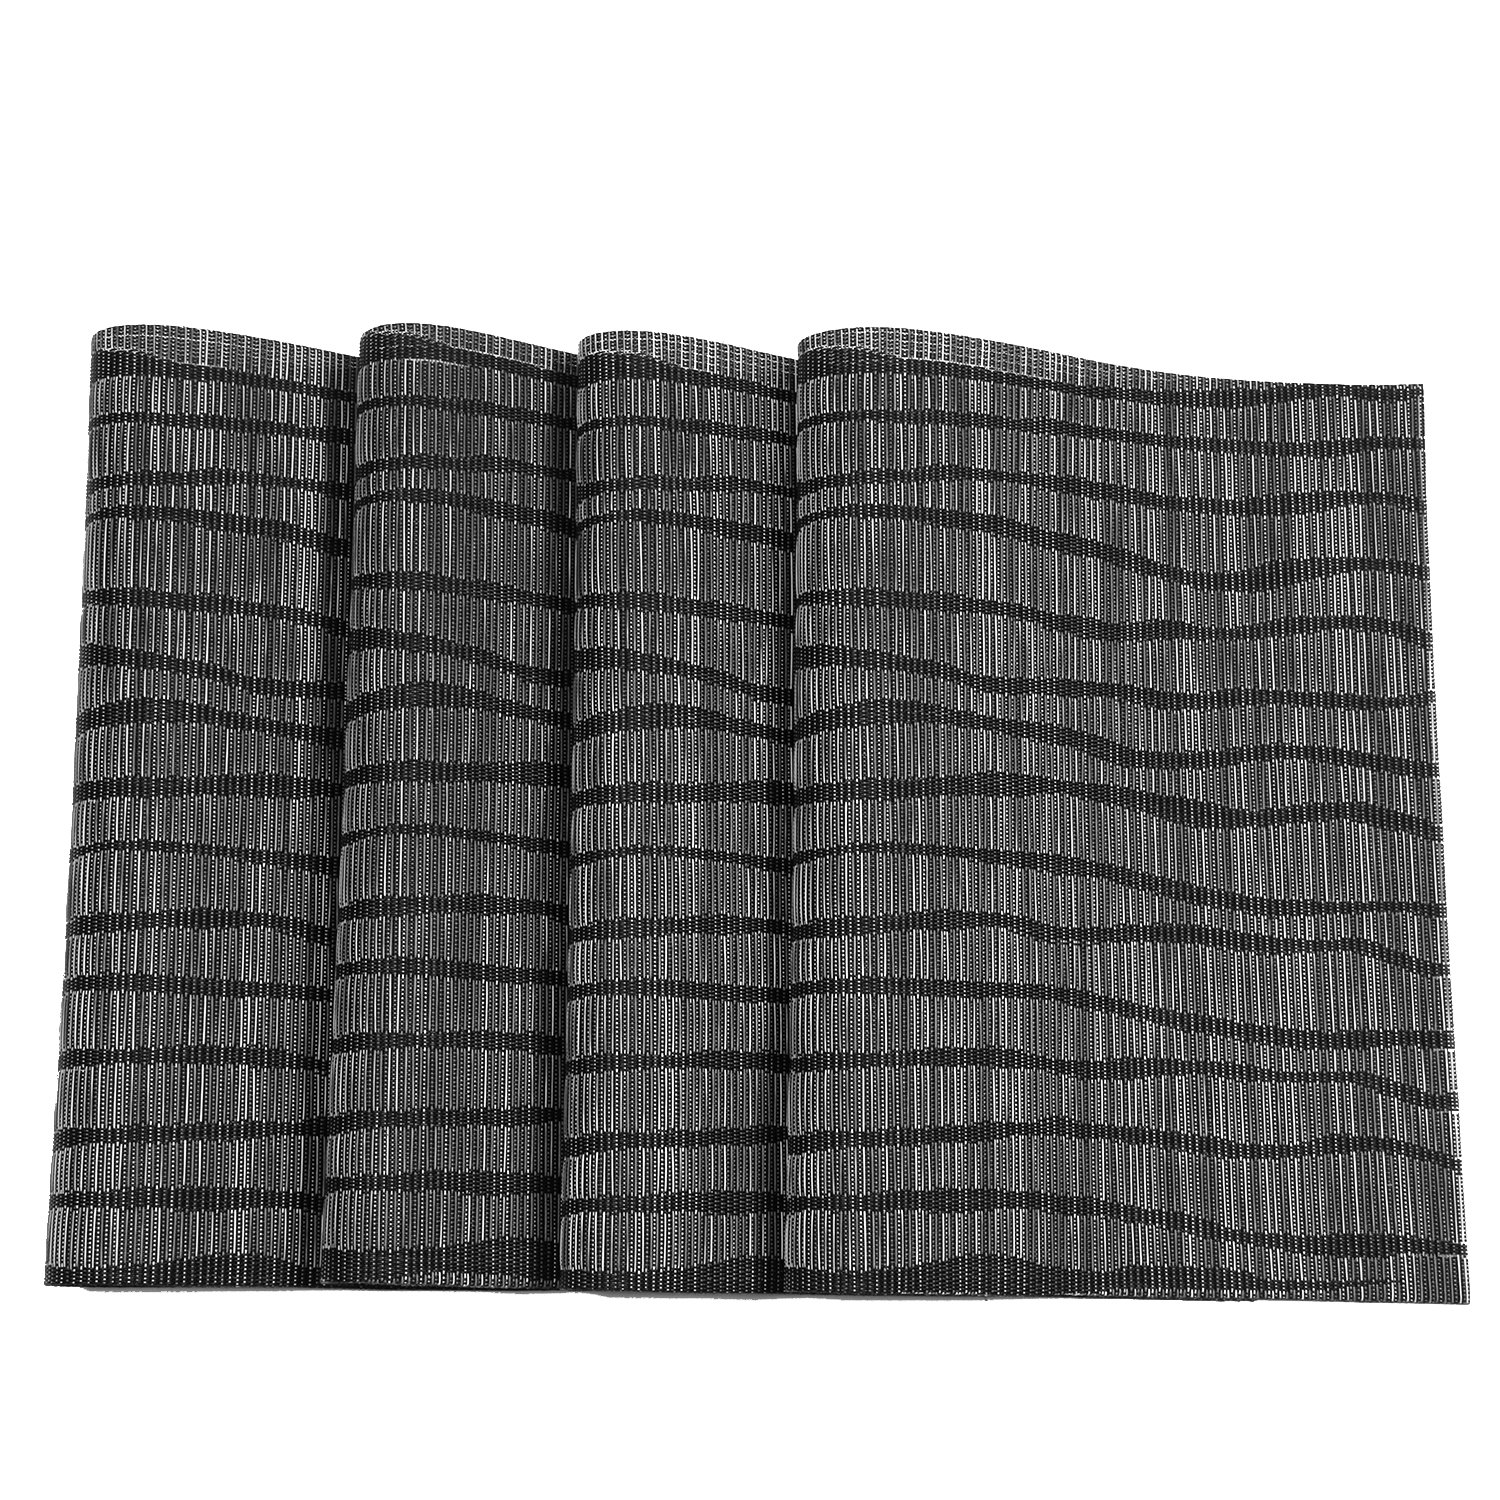 Topotdor Placemats set of 6 PVC Non-slip Insulation Stain-resistant vertical stripes Placemats for Home, Kitchen,Office and Outdoor (Set of 6, Black) by Topotdor (Image #5)